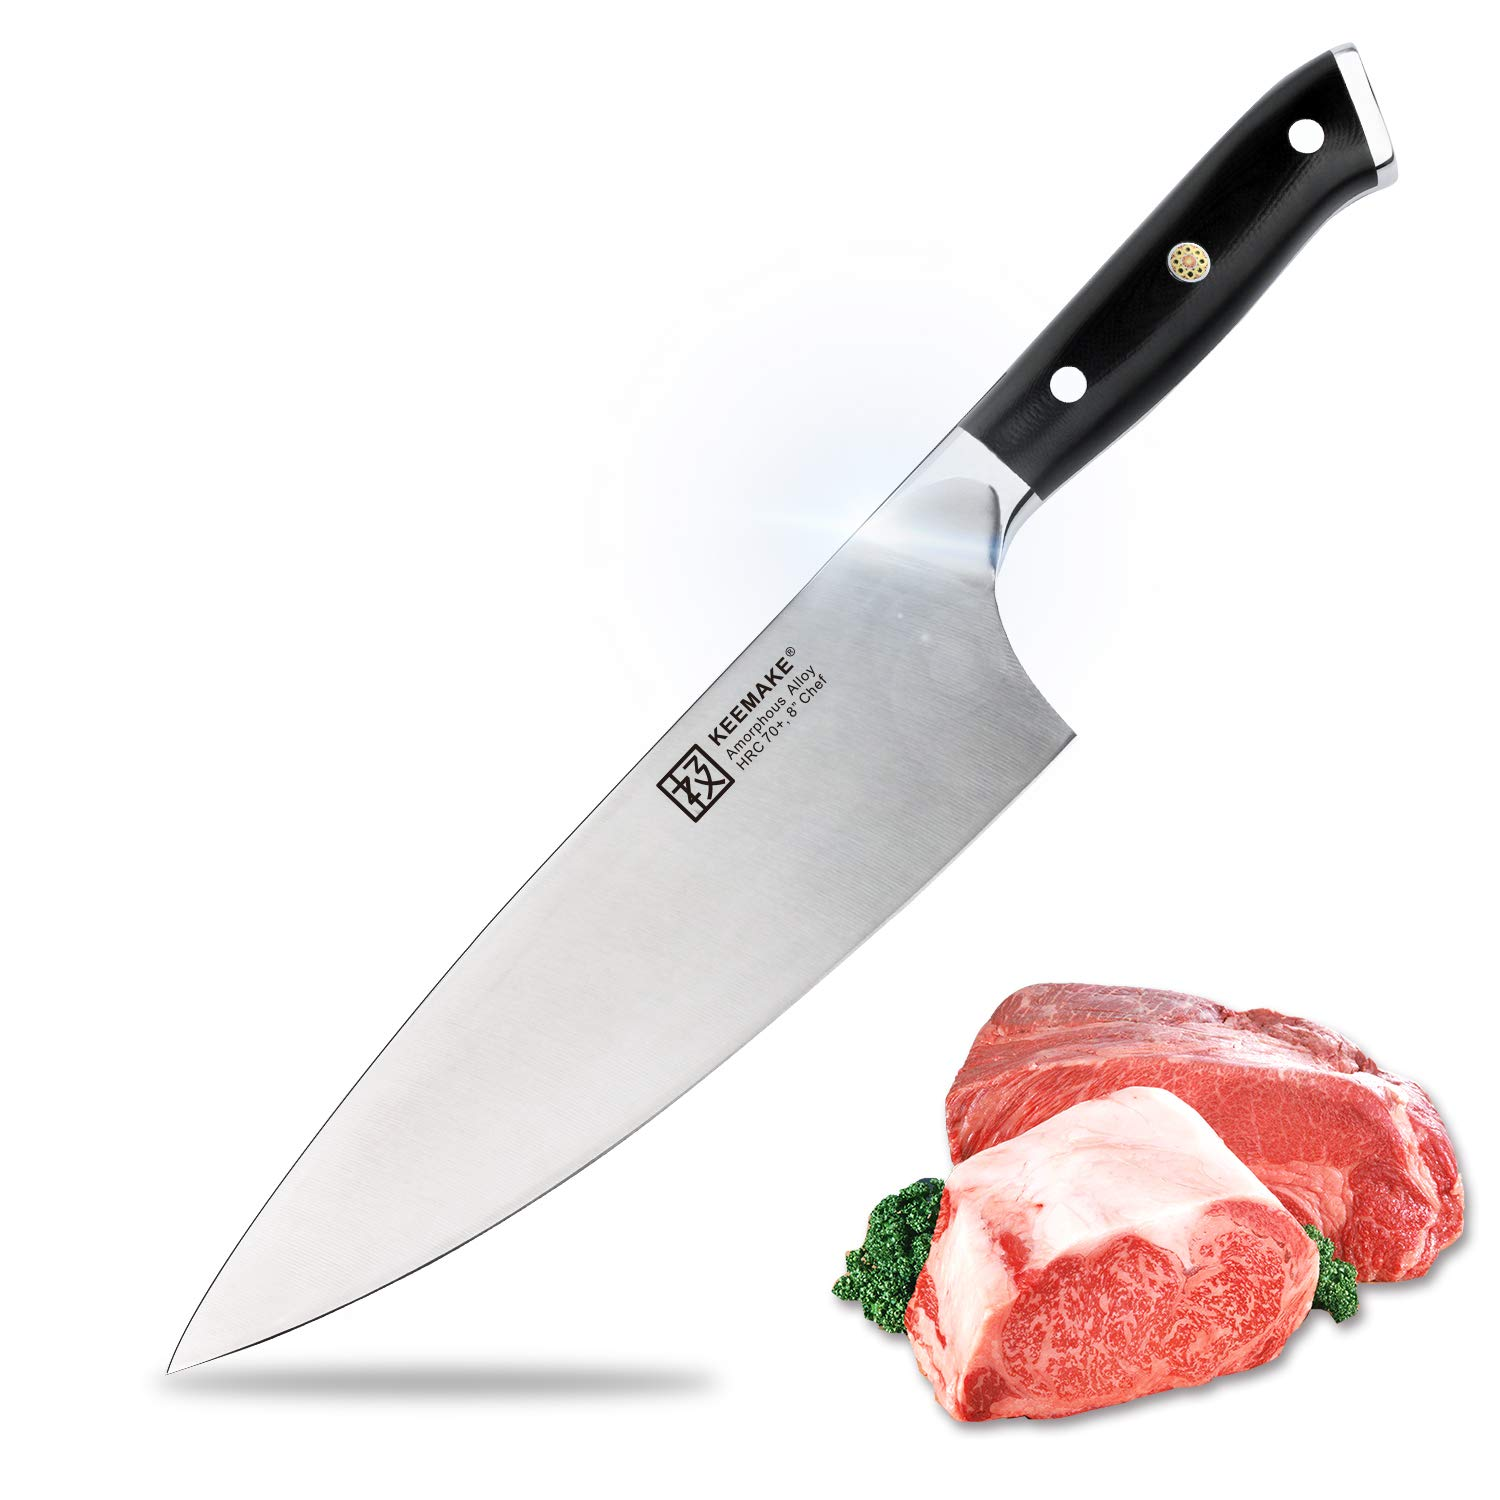 Chef Knife 8 Inch Professional Kitchen Knives Super Sharp Edge with G10 Handle 70HRC Strong Hardness Liquid Metal, Anti Corrosion Knife for Kitchen by Keemake